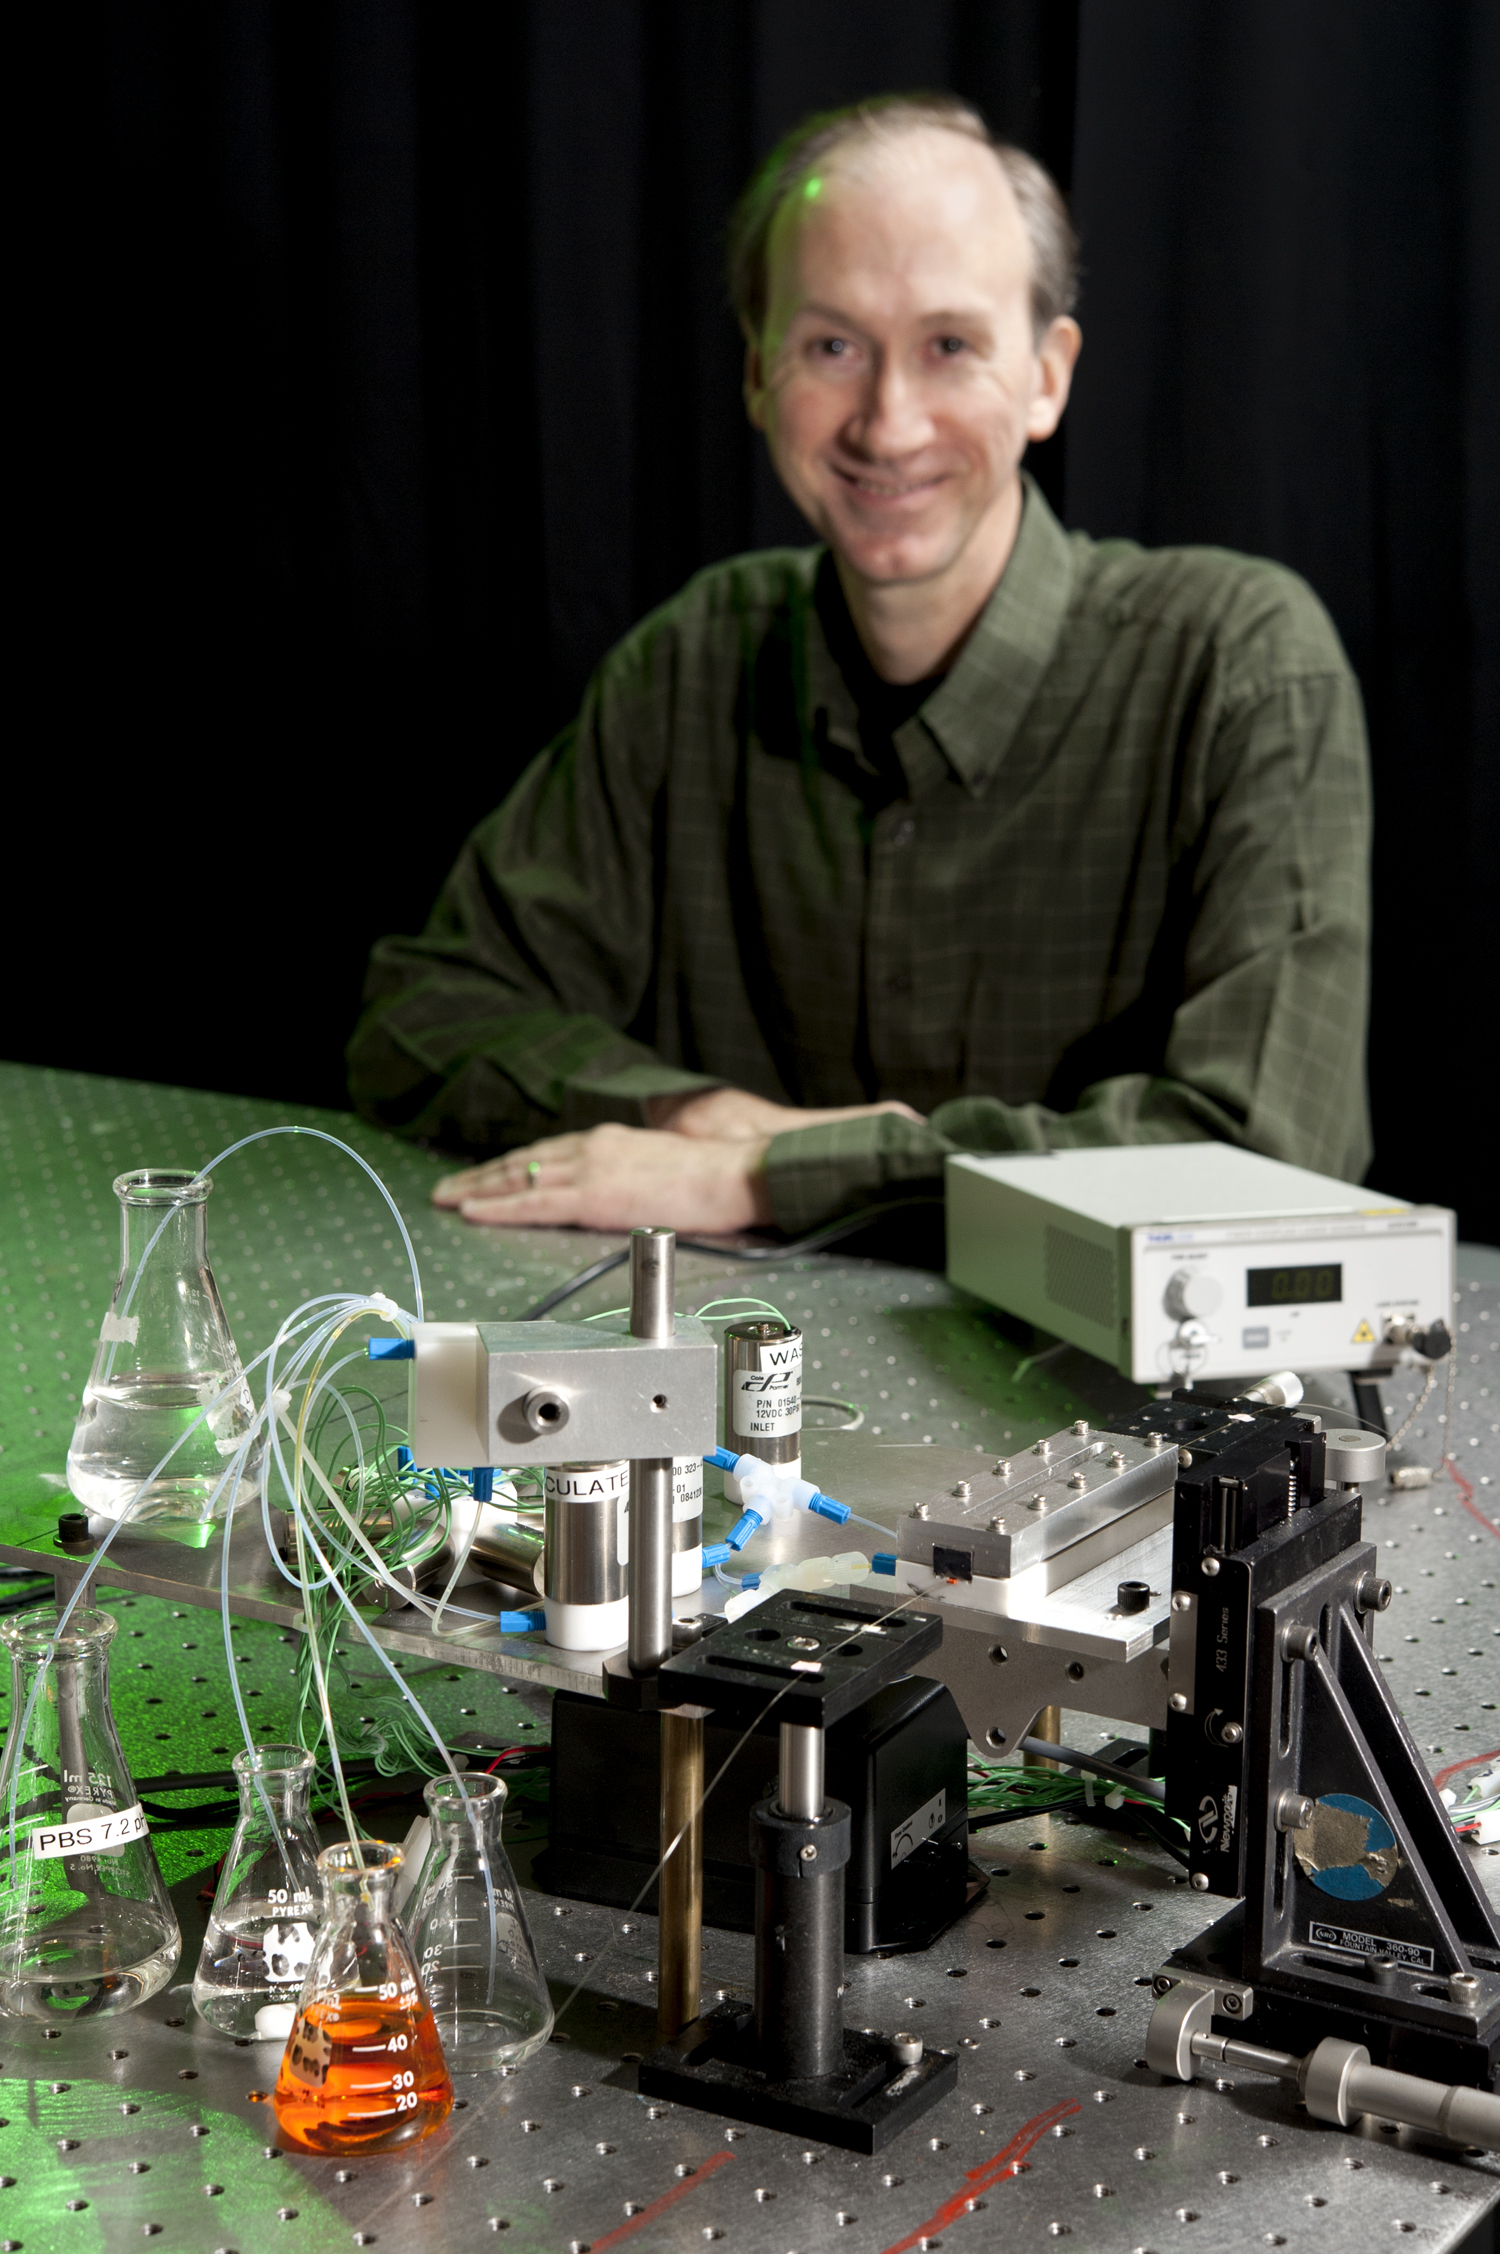 Randy Heflin, professor of physics at Virginia Tech